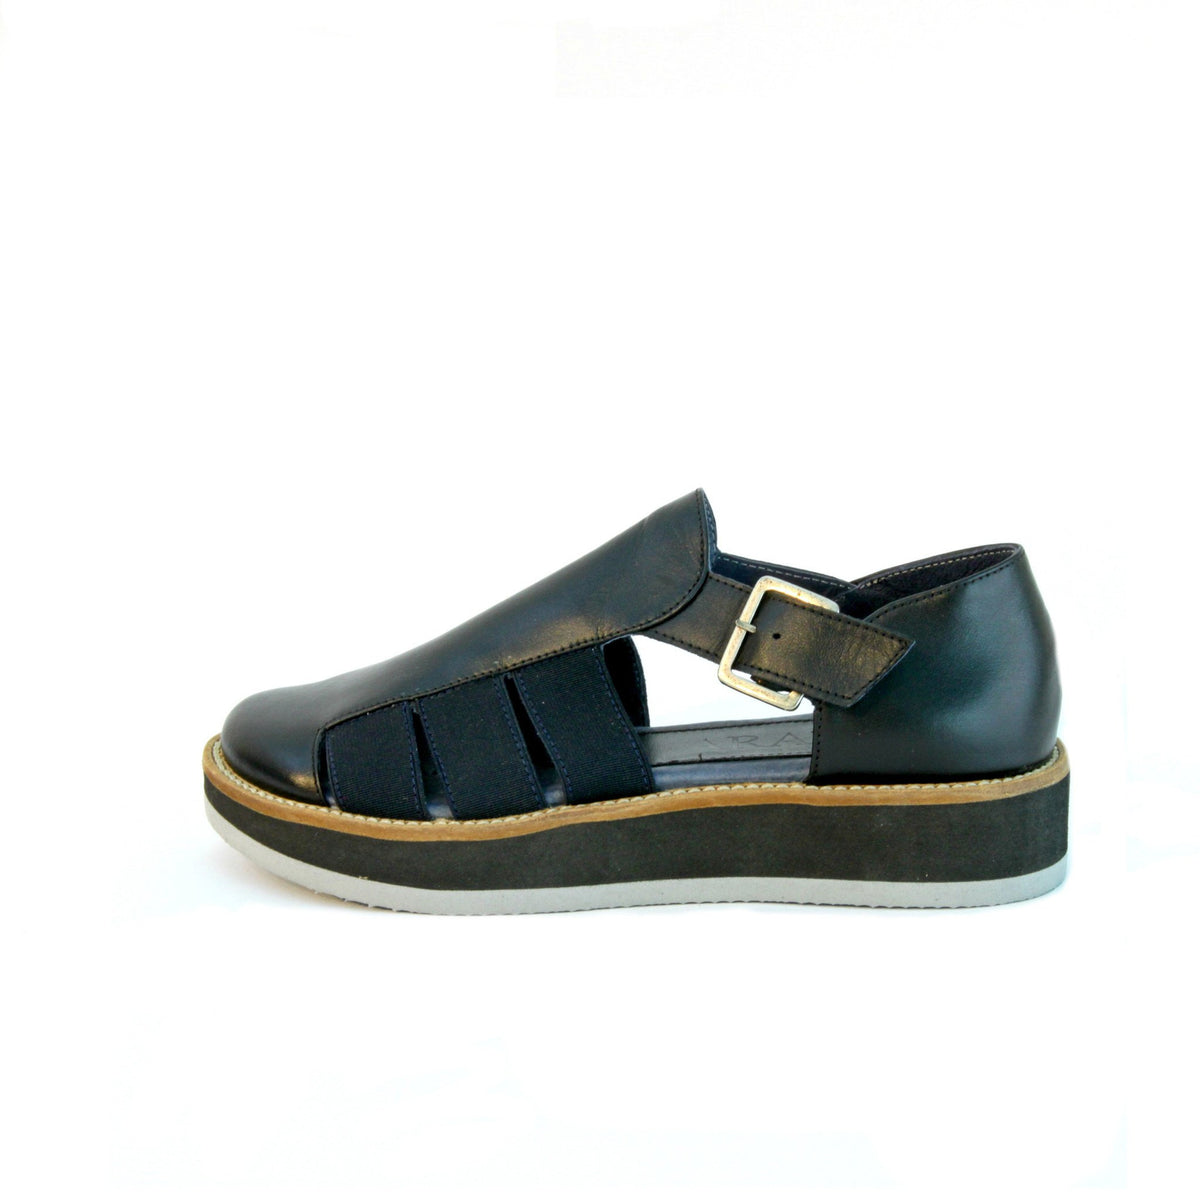 navy blue rubber & Black Leather  Woman's  wedge Sandals